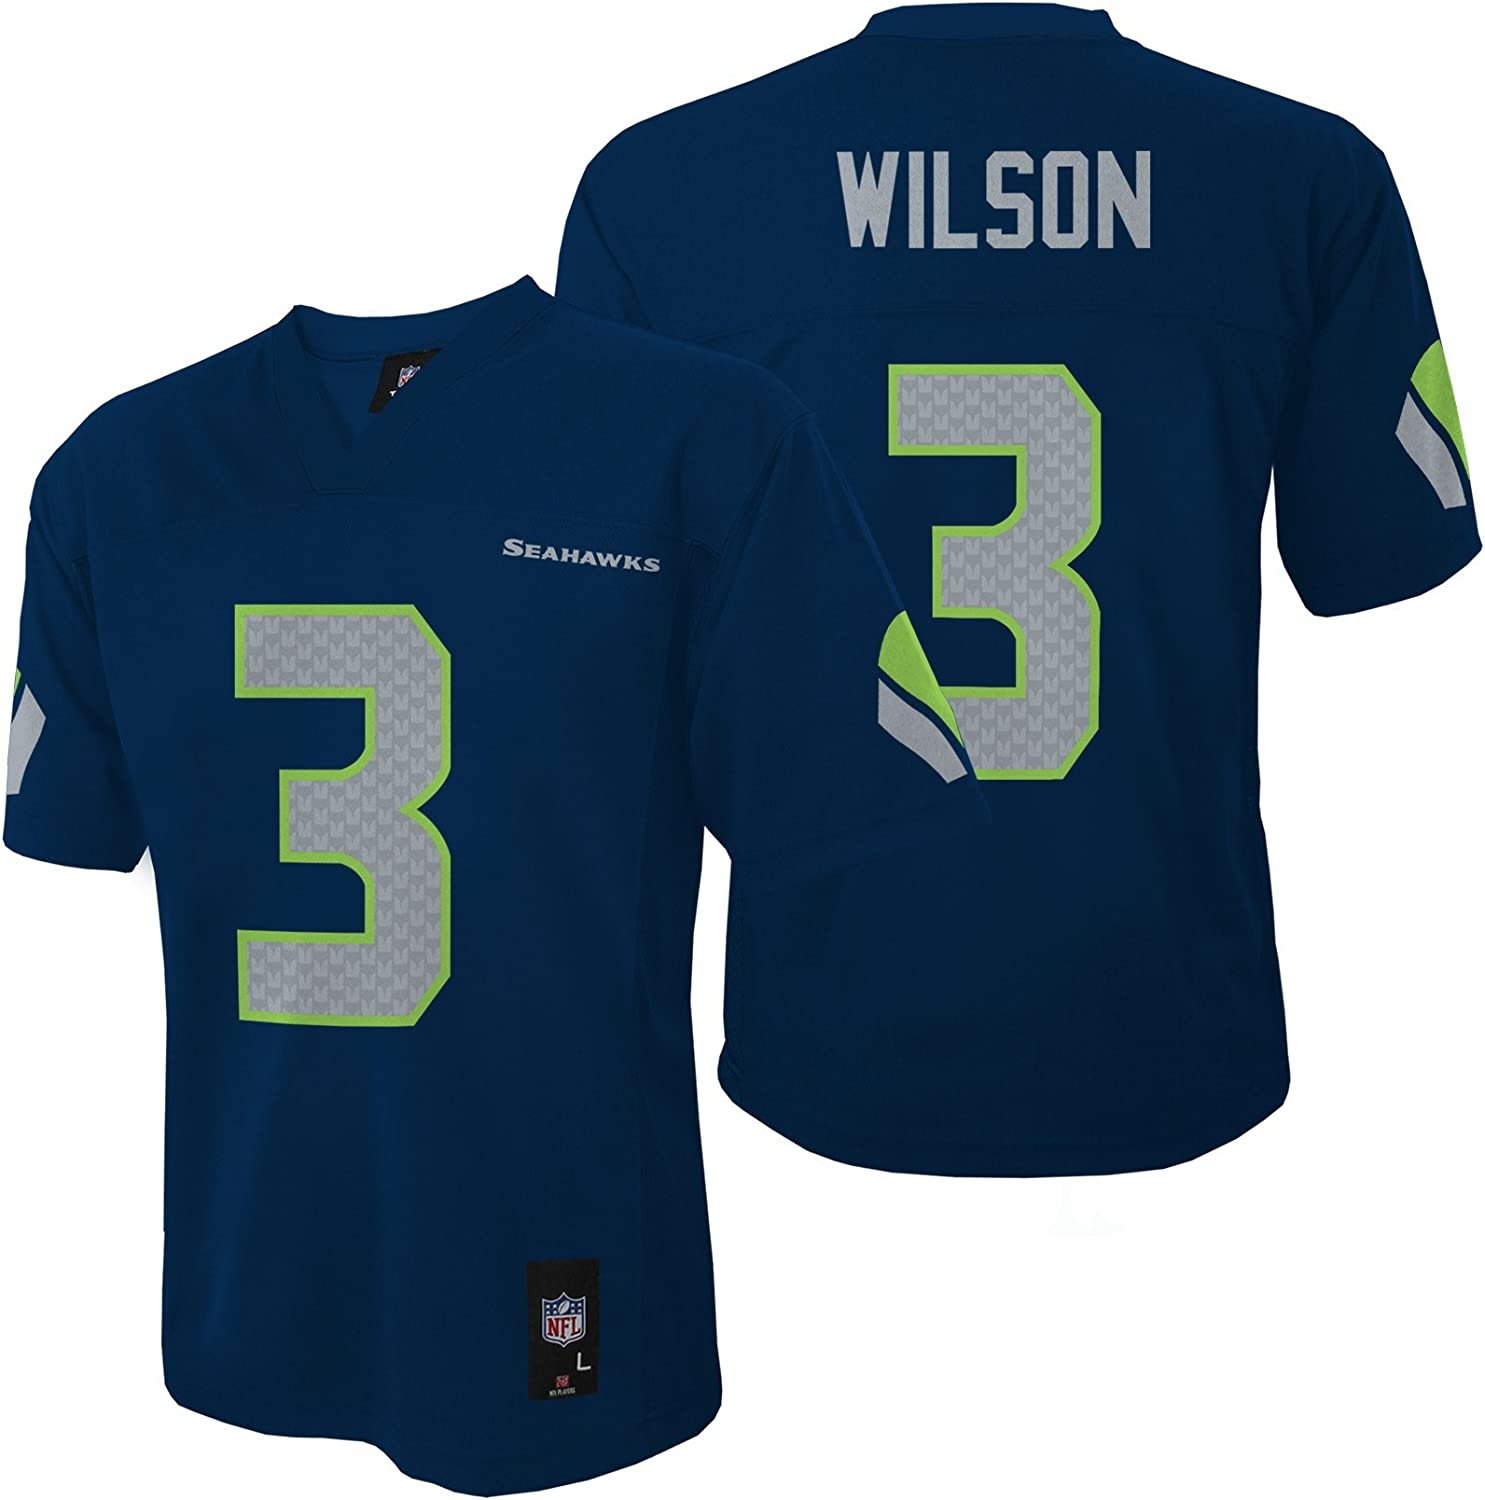 NFL Youth Boys 8-20 Russell Wilson Seattle Seahawks Boys -Player ...